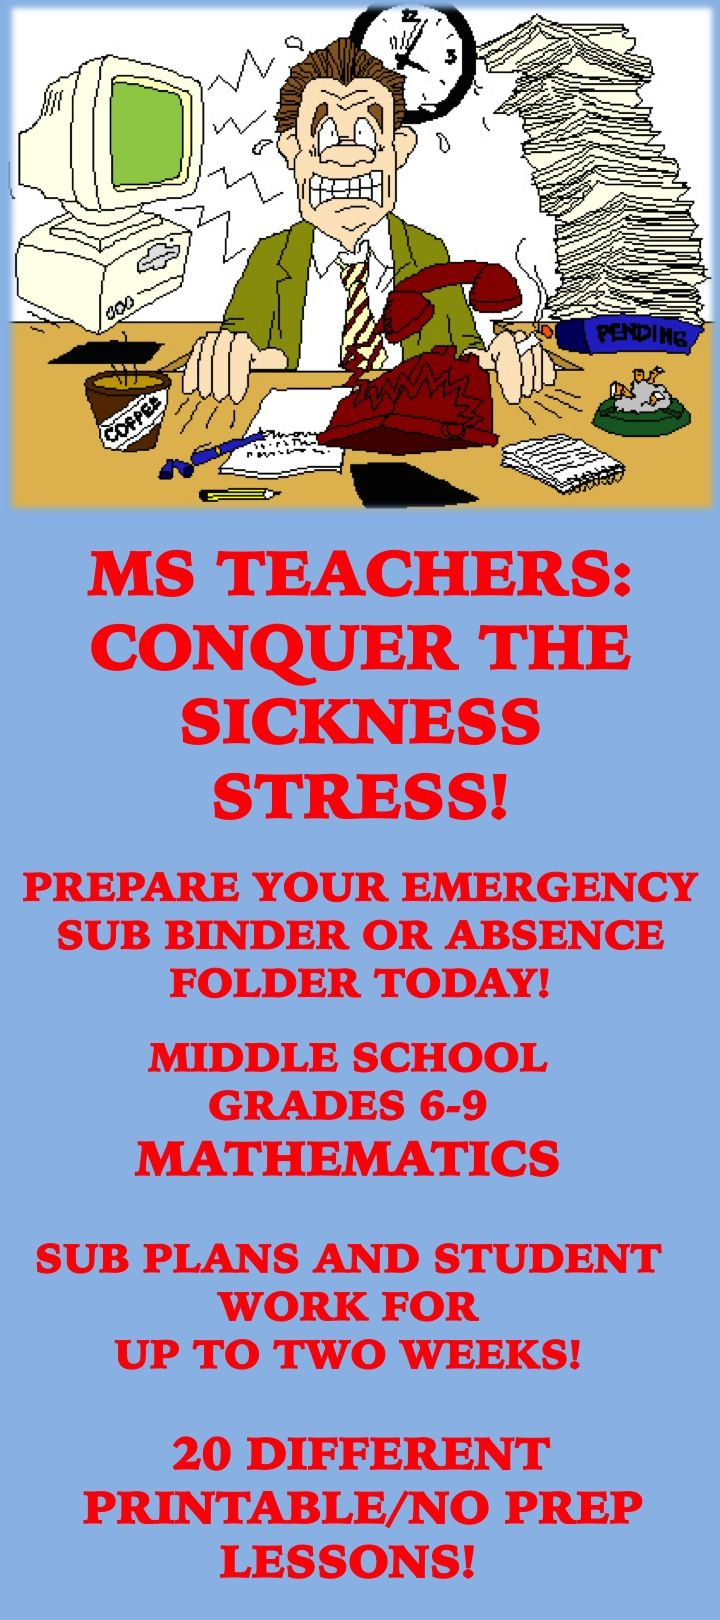 School Is Starting Sooner Or Later You Ll Need A Sick Day Or Emergency Absence These Resources Will Take Middle School Math Middle School Emergency Sub Plans [ 1620 x 720 Pixel ]